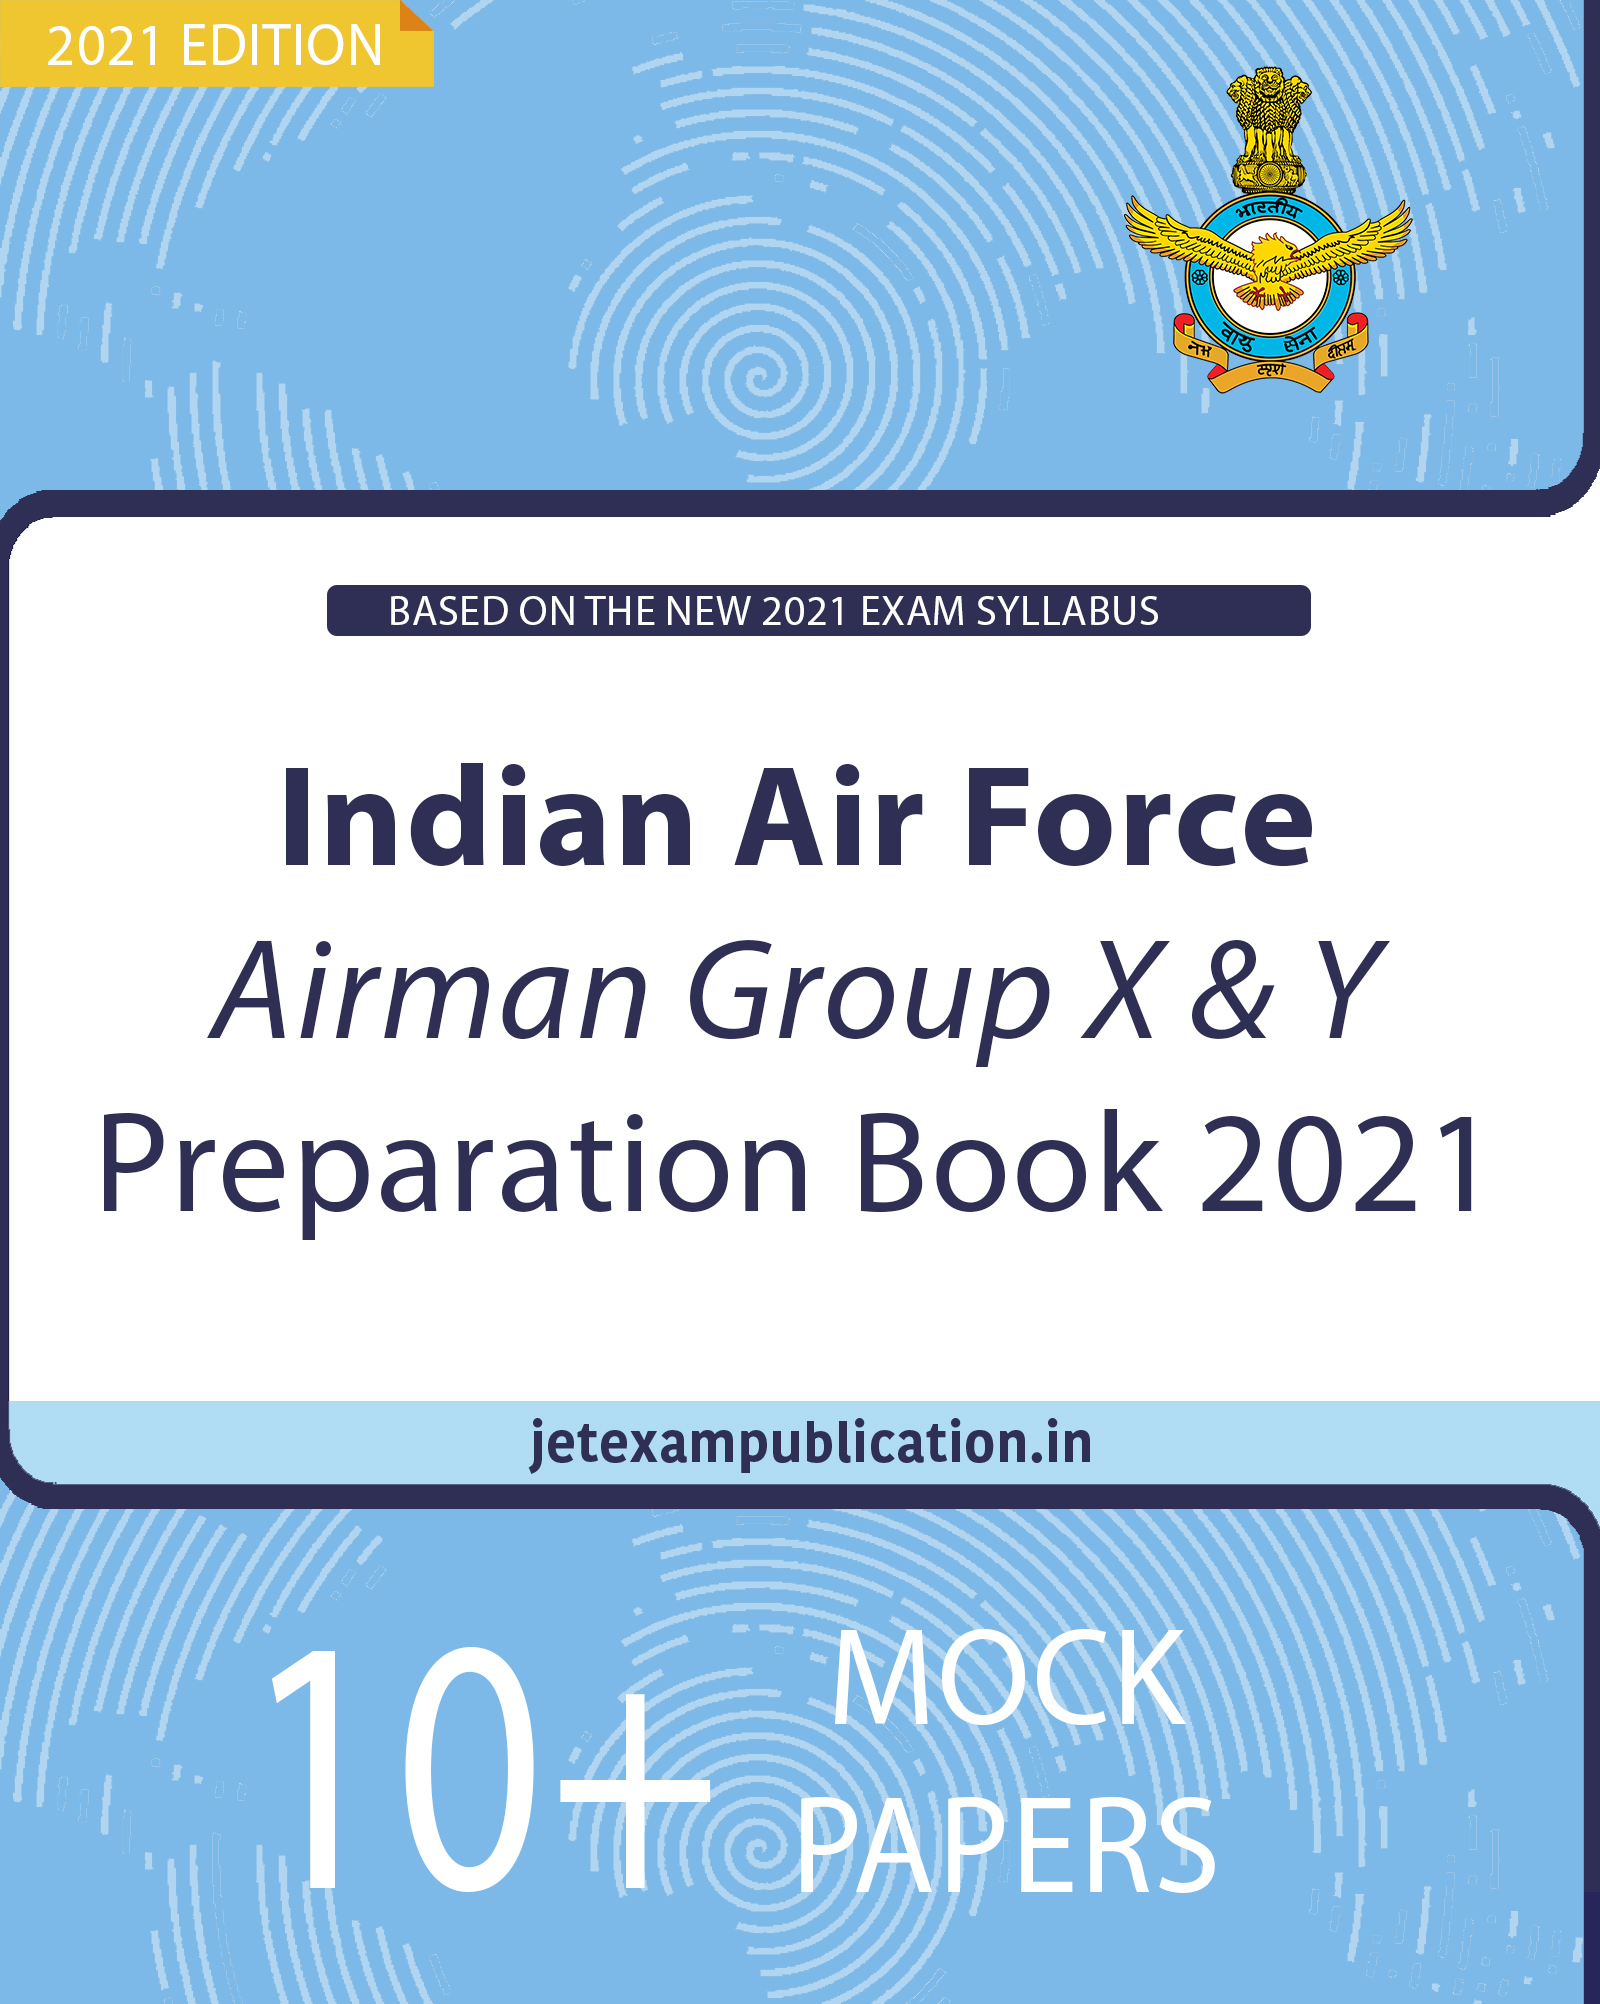 Indian Air Force Airman Group X & Y Preparation Book 2021